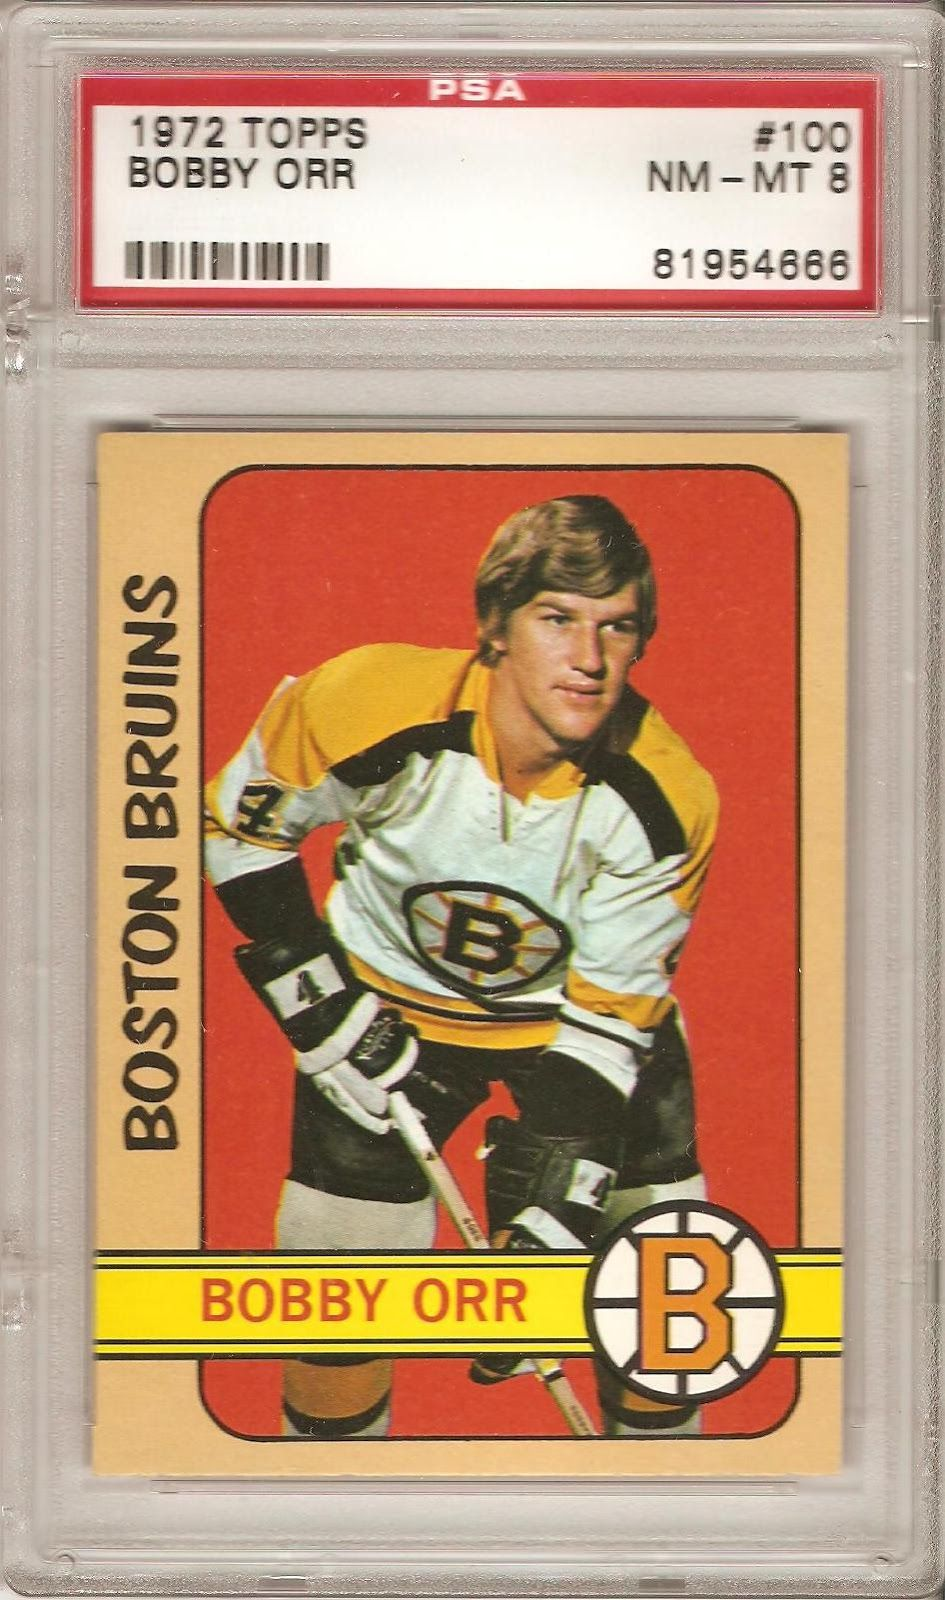 100 Most Valuable Hockey Cards | Card #10 - 1972-73 Topps #100 - Bobby Orr